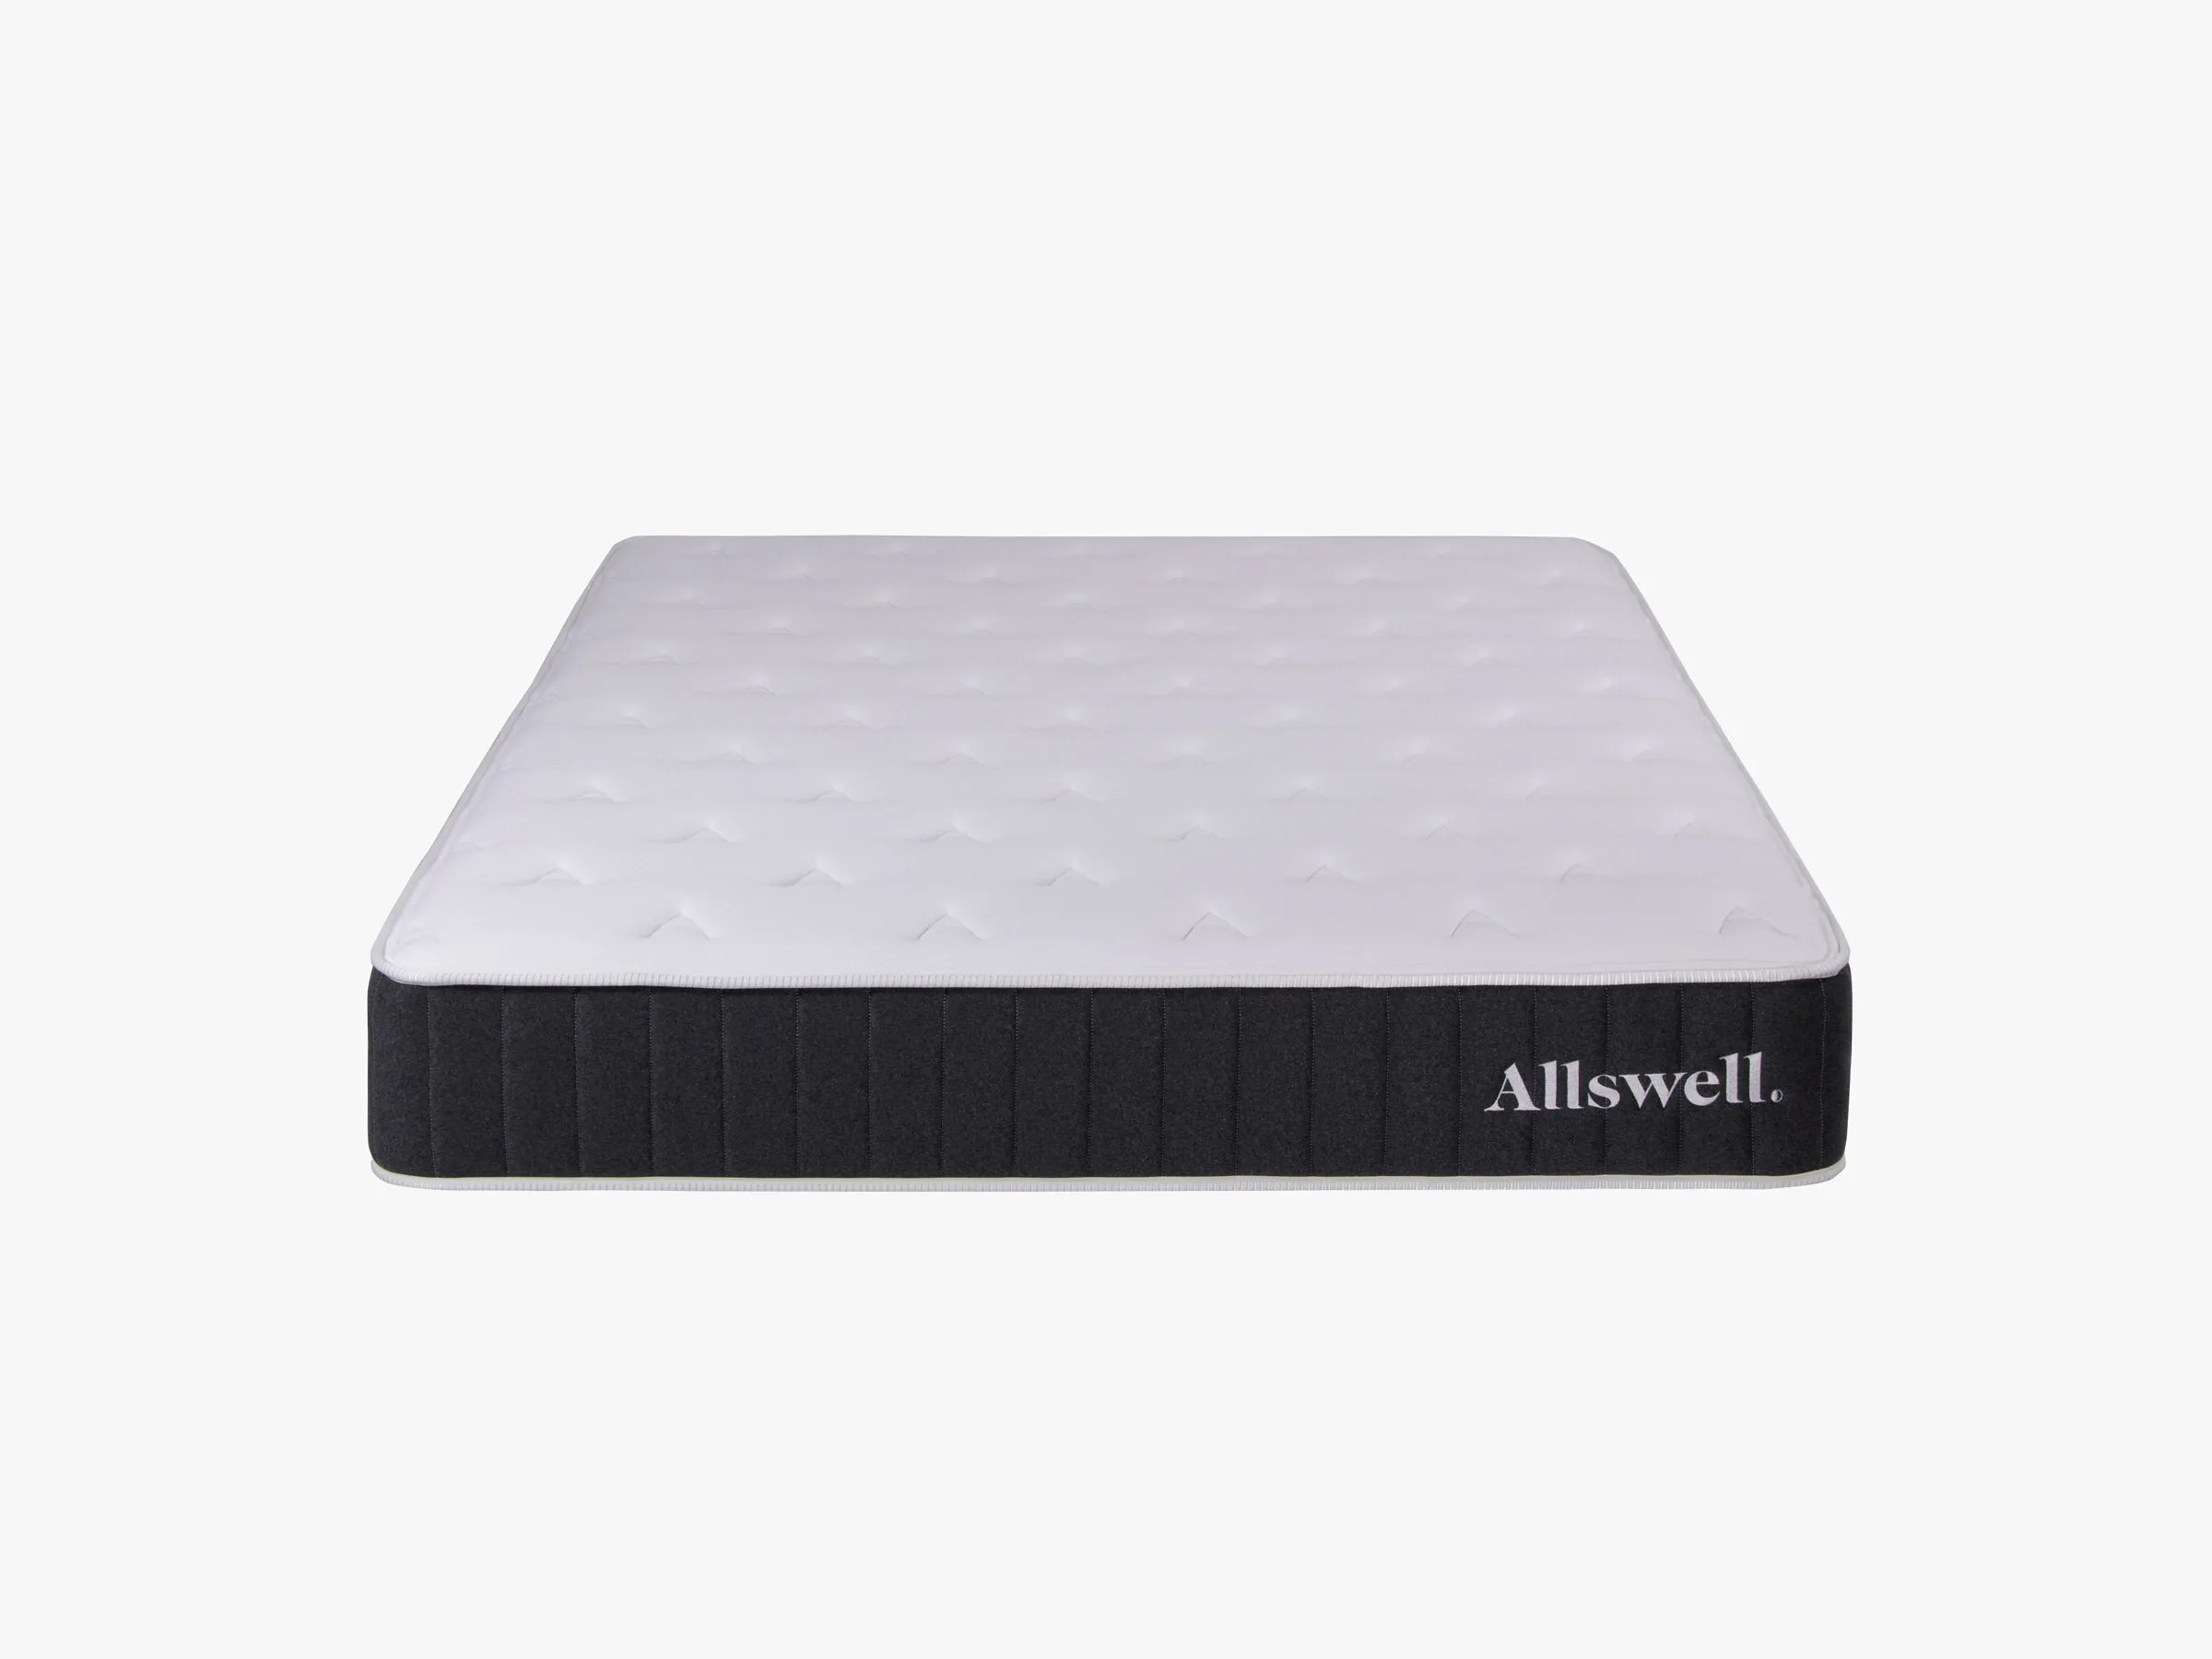 Best Mattress Amazon The Allswell Hybrid 10 Inch